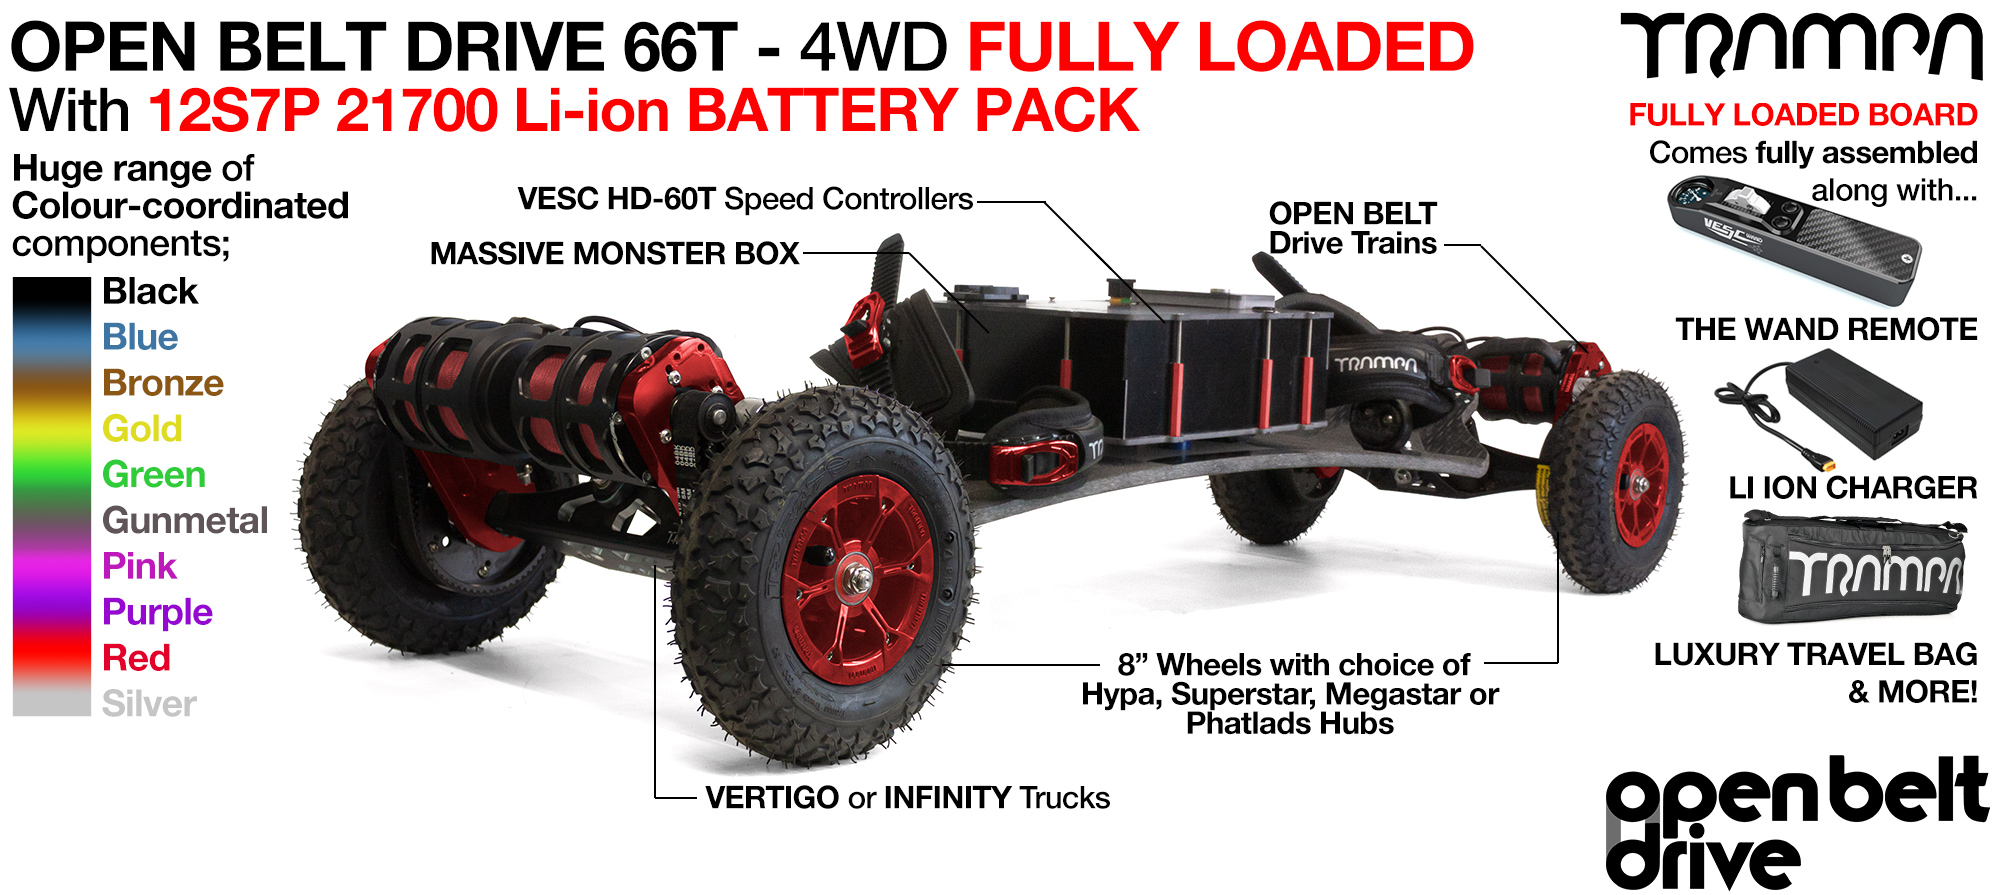 4WD 66T Open Belt Drive TRAMPA Electric Mountainboard with 8 Inch Wheels & 66 Tooth Pulleys - LOADED